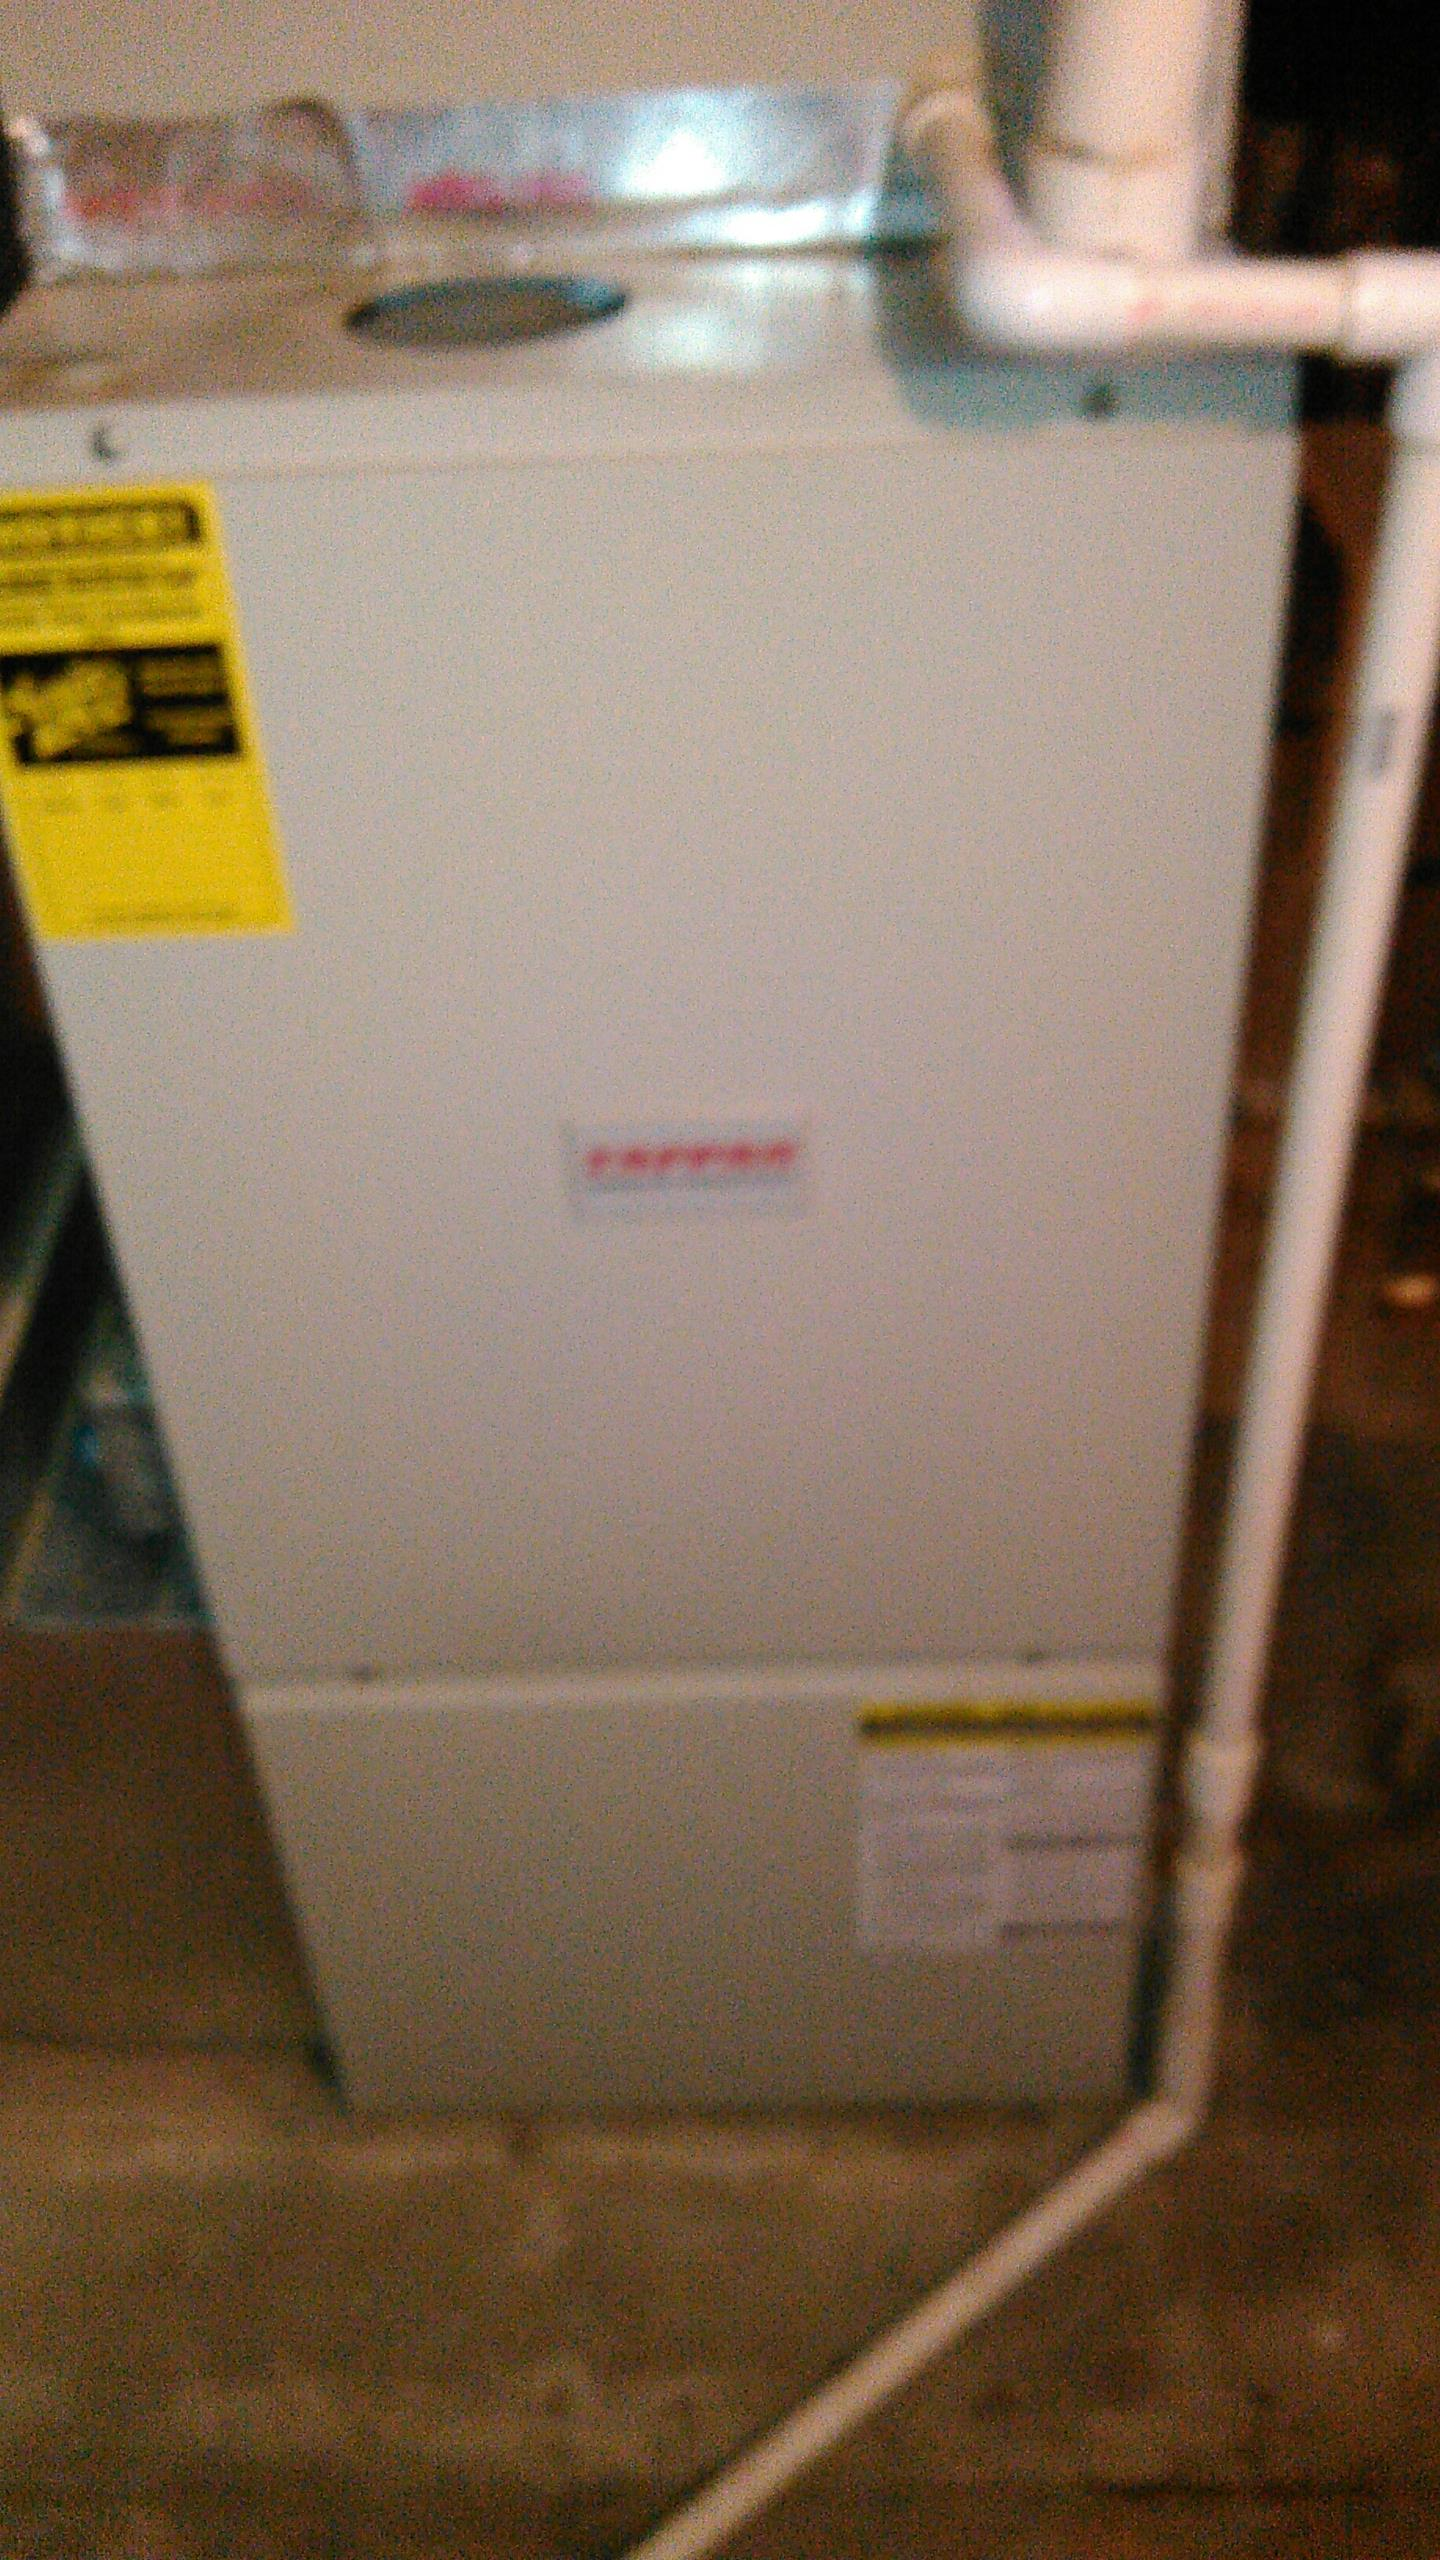 Towanda, IL - TUNE UP ON TAPPAN FURNACE AND ALSO CLEANED EVAPORATOR COIL